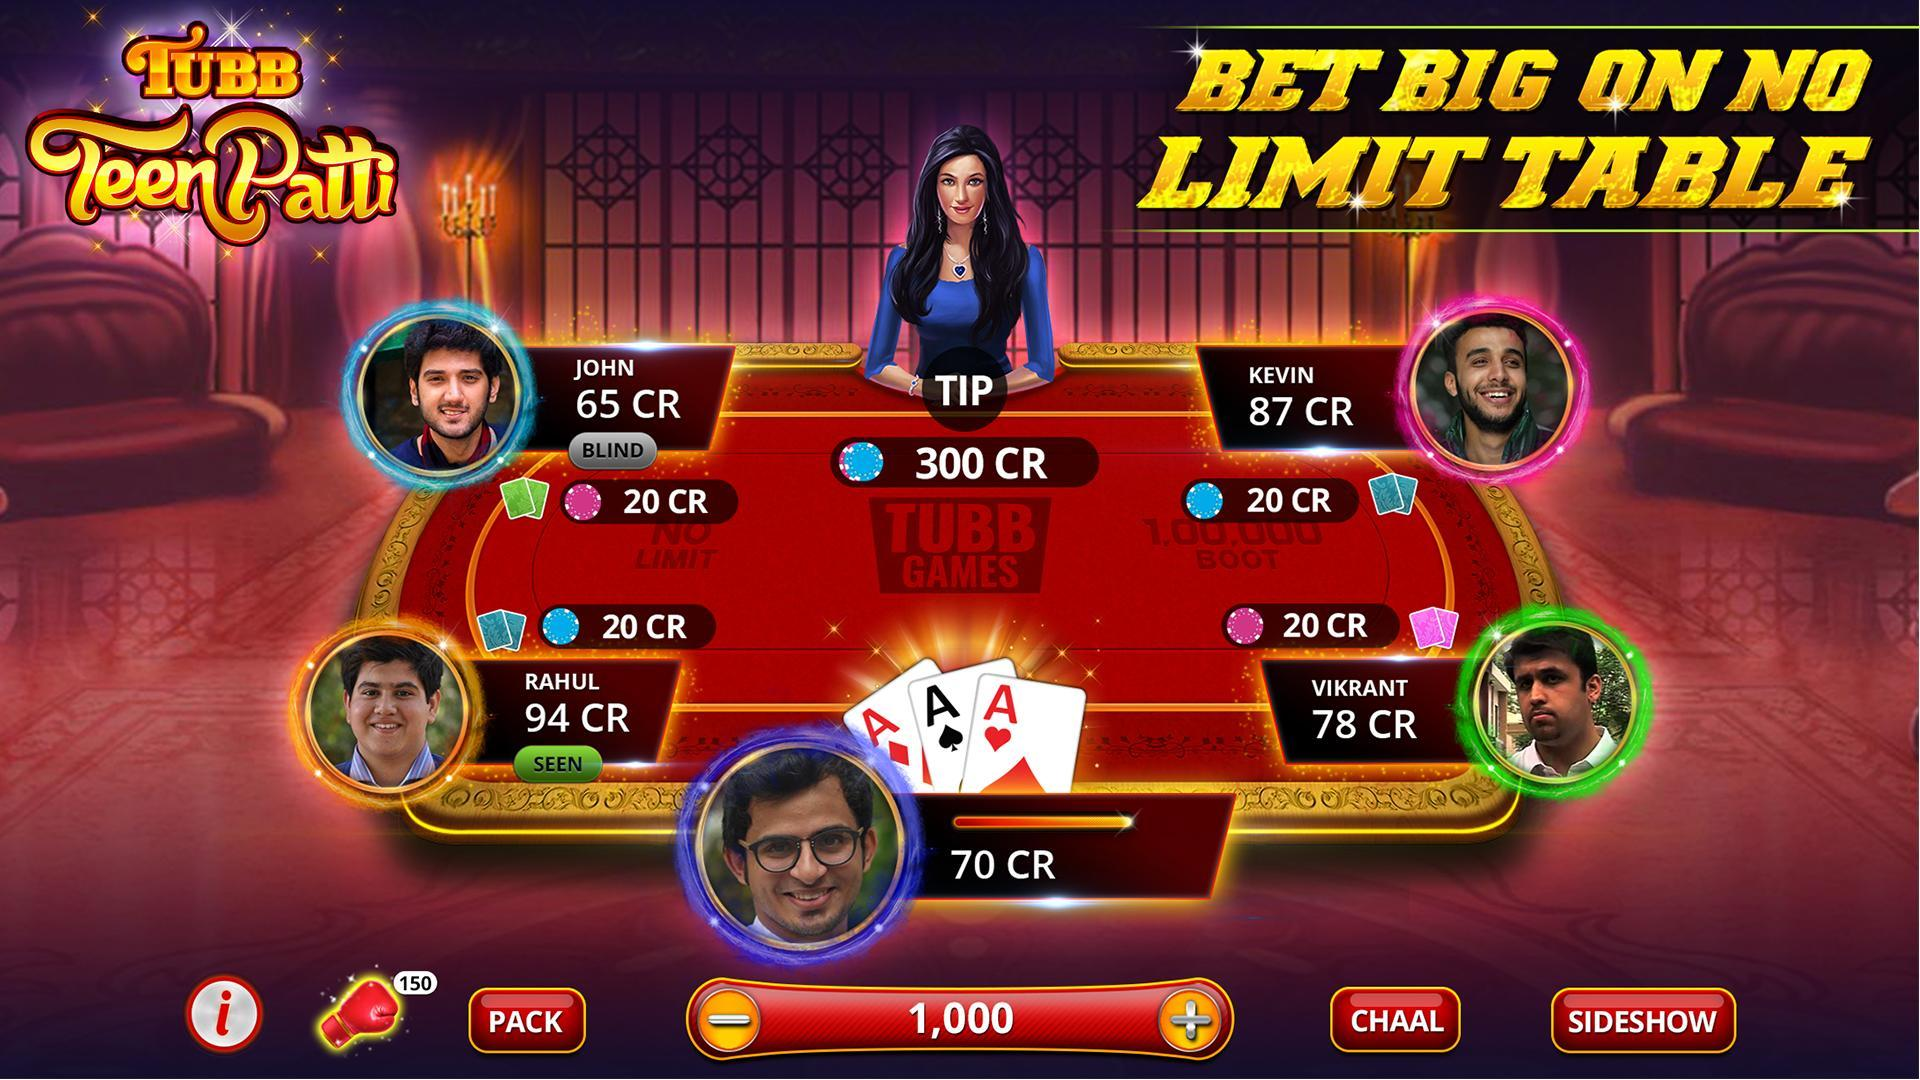 Tubb Teen Patti - Indian Poker - TTP 3.7 Screenshot 3